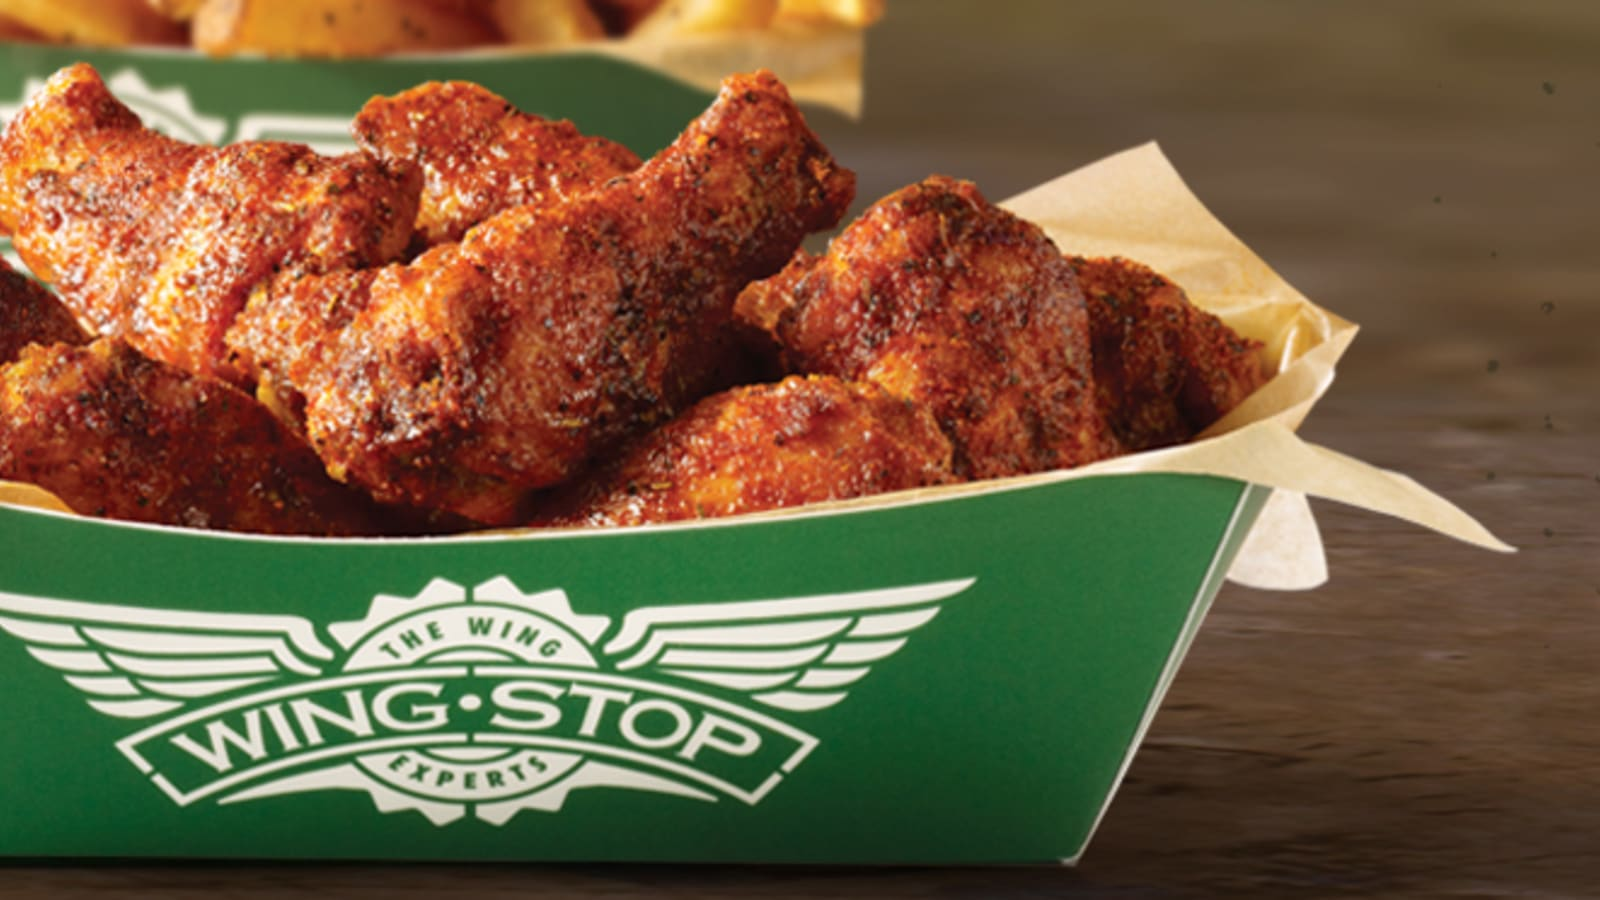 It's Time to Lock Profits on Wingstop (NASDAQ: WING)